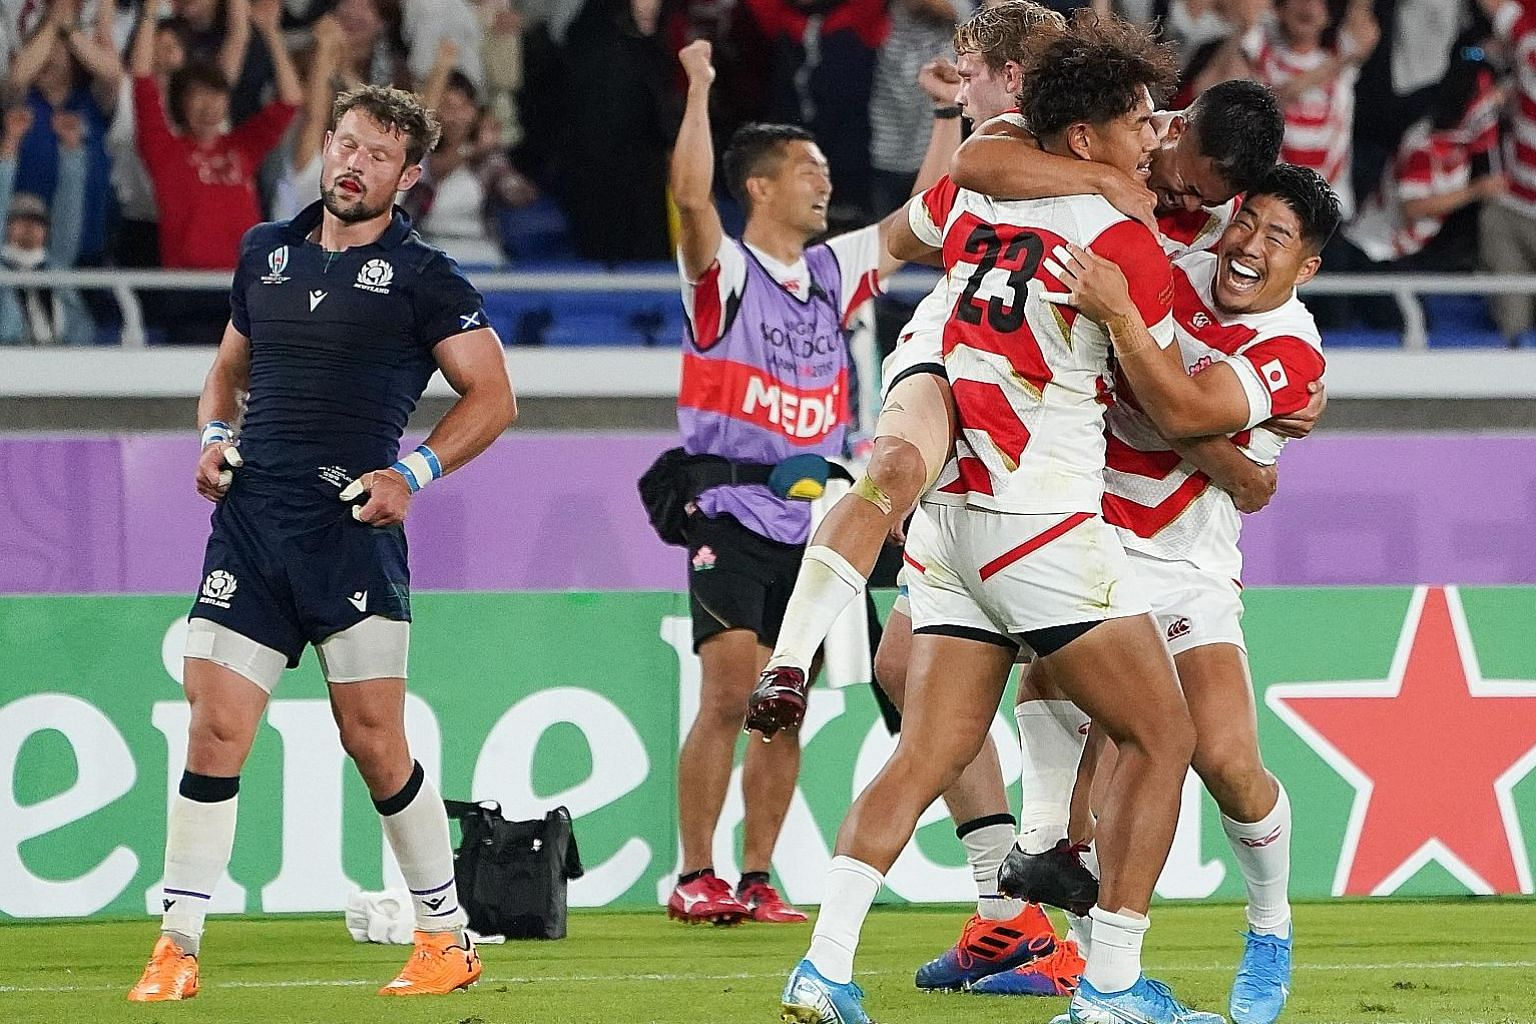 Heartwarming scenes in Yokohama last night after Japan fended off a late fightback by Scotland to win their Rugby World Cup match 28-21 to top Pool A. On current form, they have every chance of repeating their shock victory over the Springboks four y